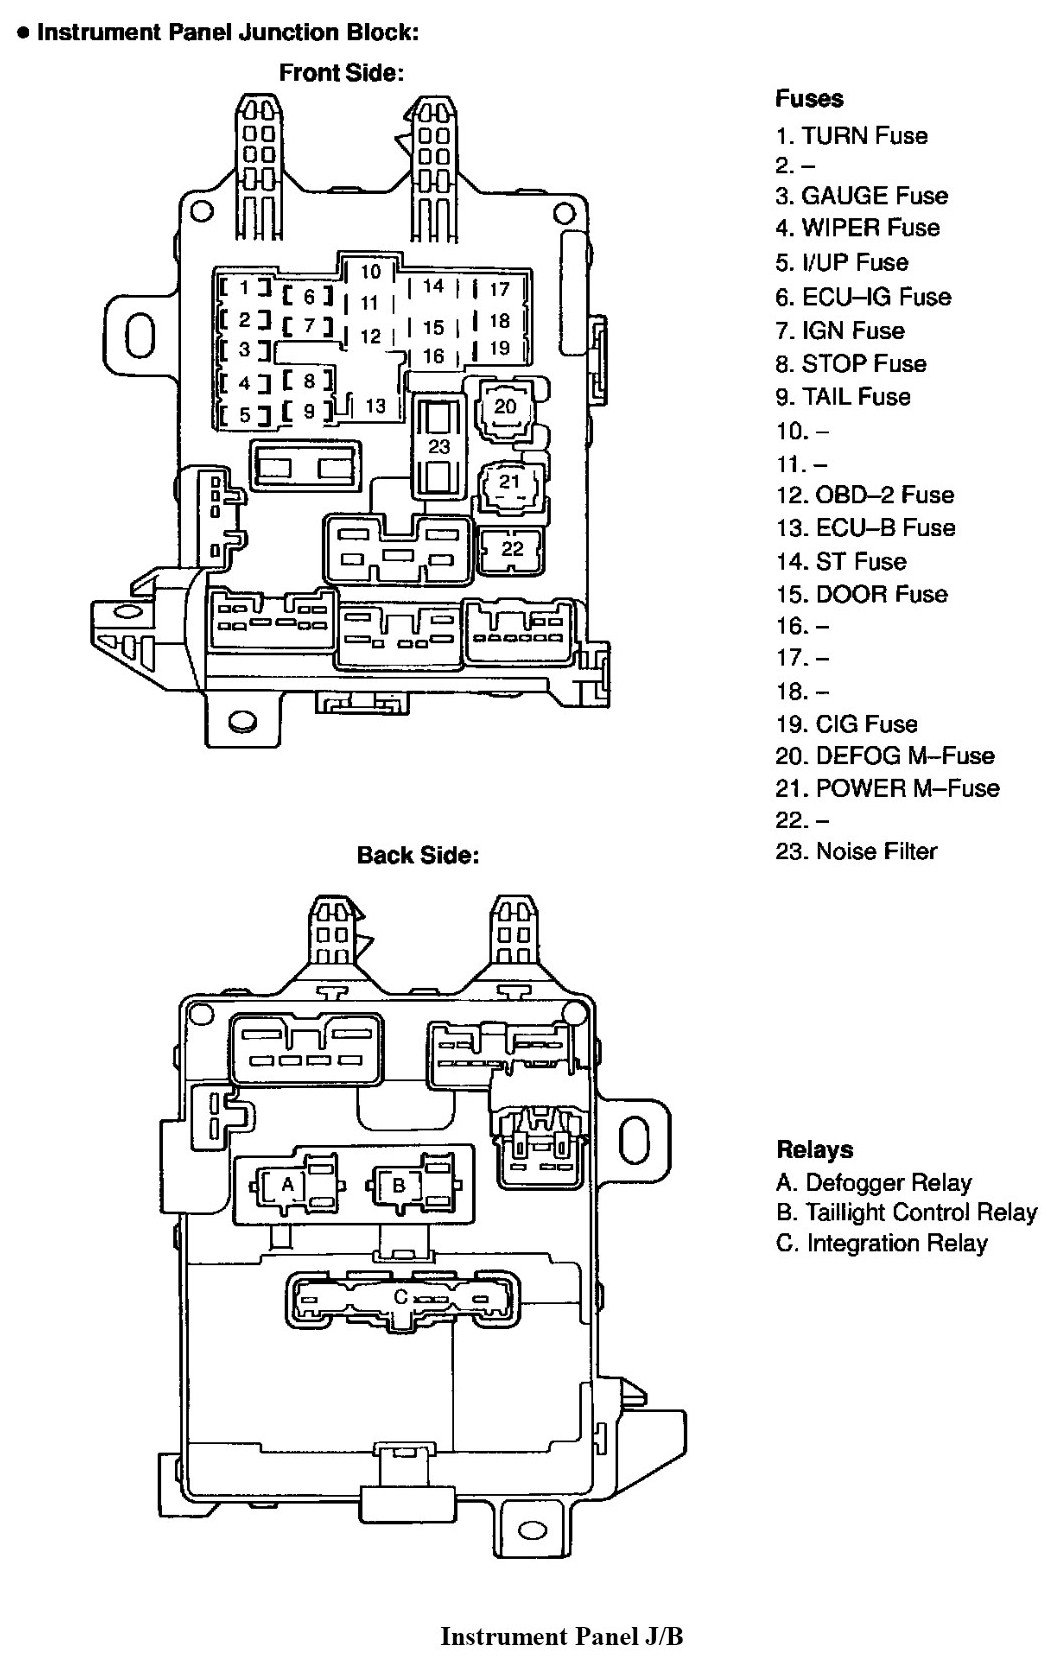 Toyota Corolla Fuse Diagram Archive Of Automotive Wiring 1993 Box 2007 Electronic Diagrams Rh Ore House Co Uk